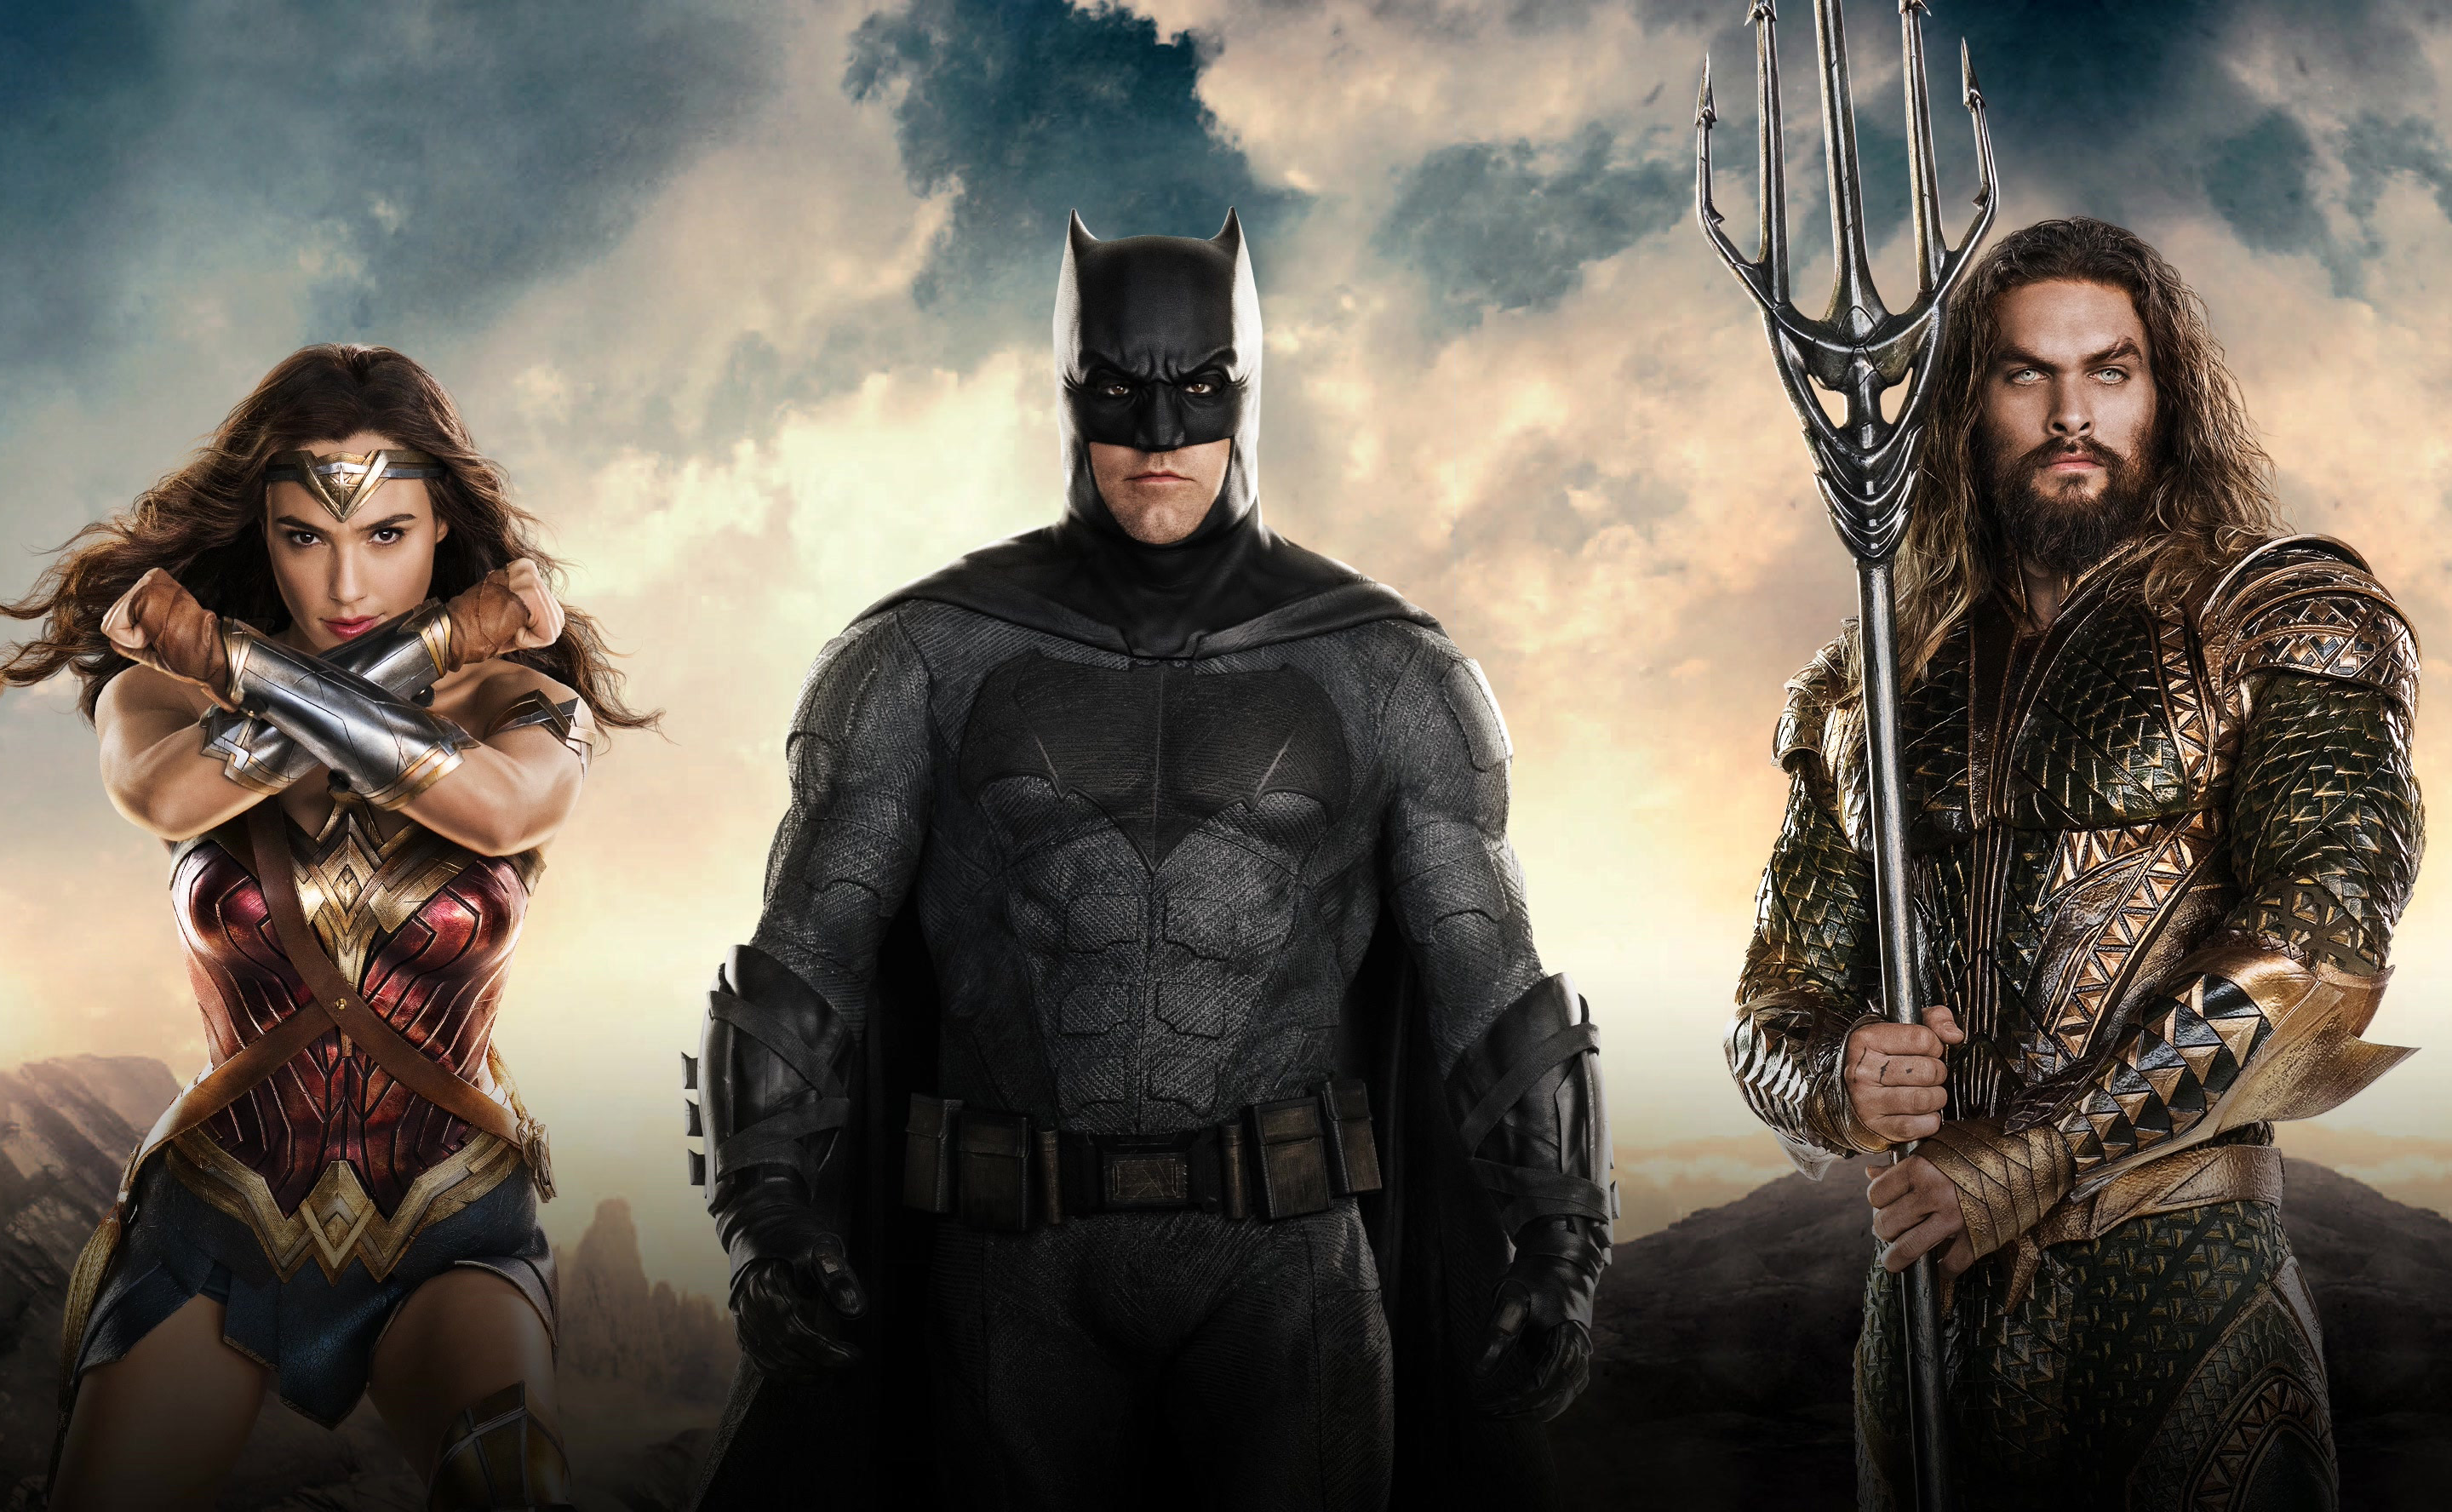 Hd wallpaper justice league - Hd Wallpaper Background Id 841913 2880x1776 Movie Justice League